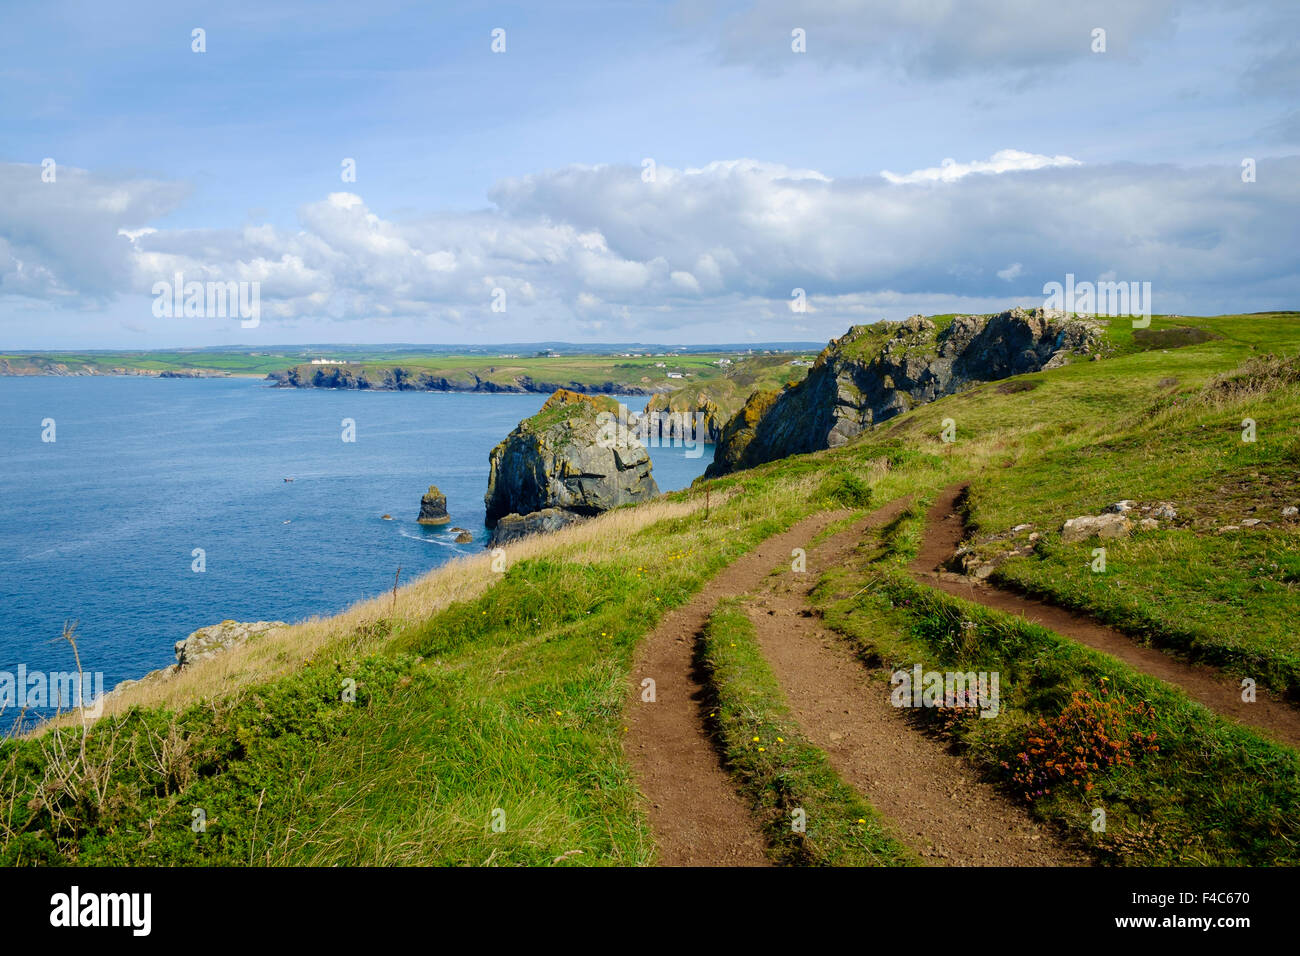 South West Coast path and Cornwall coast view near Mullion, Lizard Peninsula, Cornwall, England, UK - Stock Image